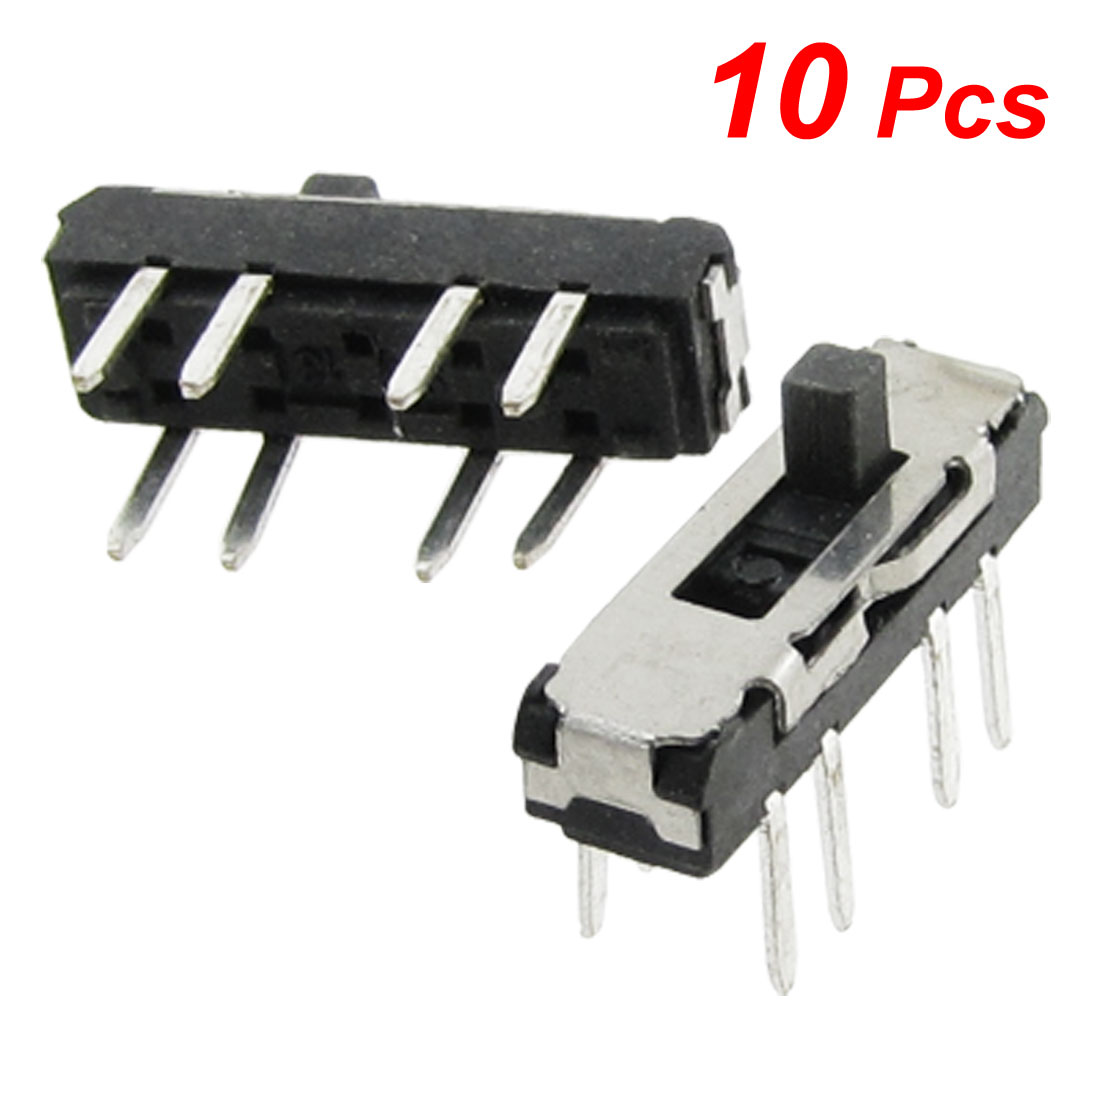 10-Pcs-Vertical-Double-Row-8-Pin-On-Off-On-3-Position-2P3T-Mini-Slide-Switch